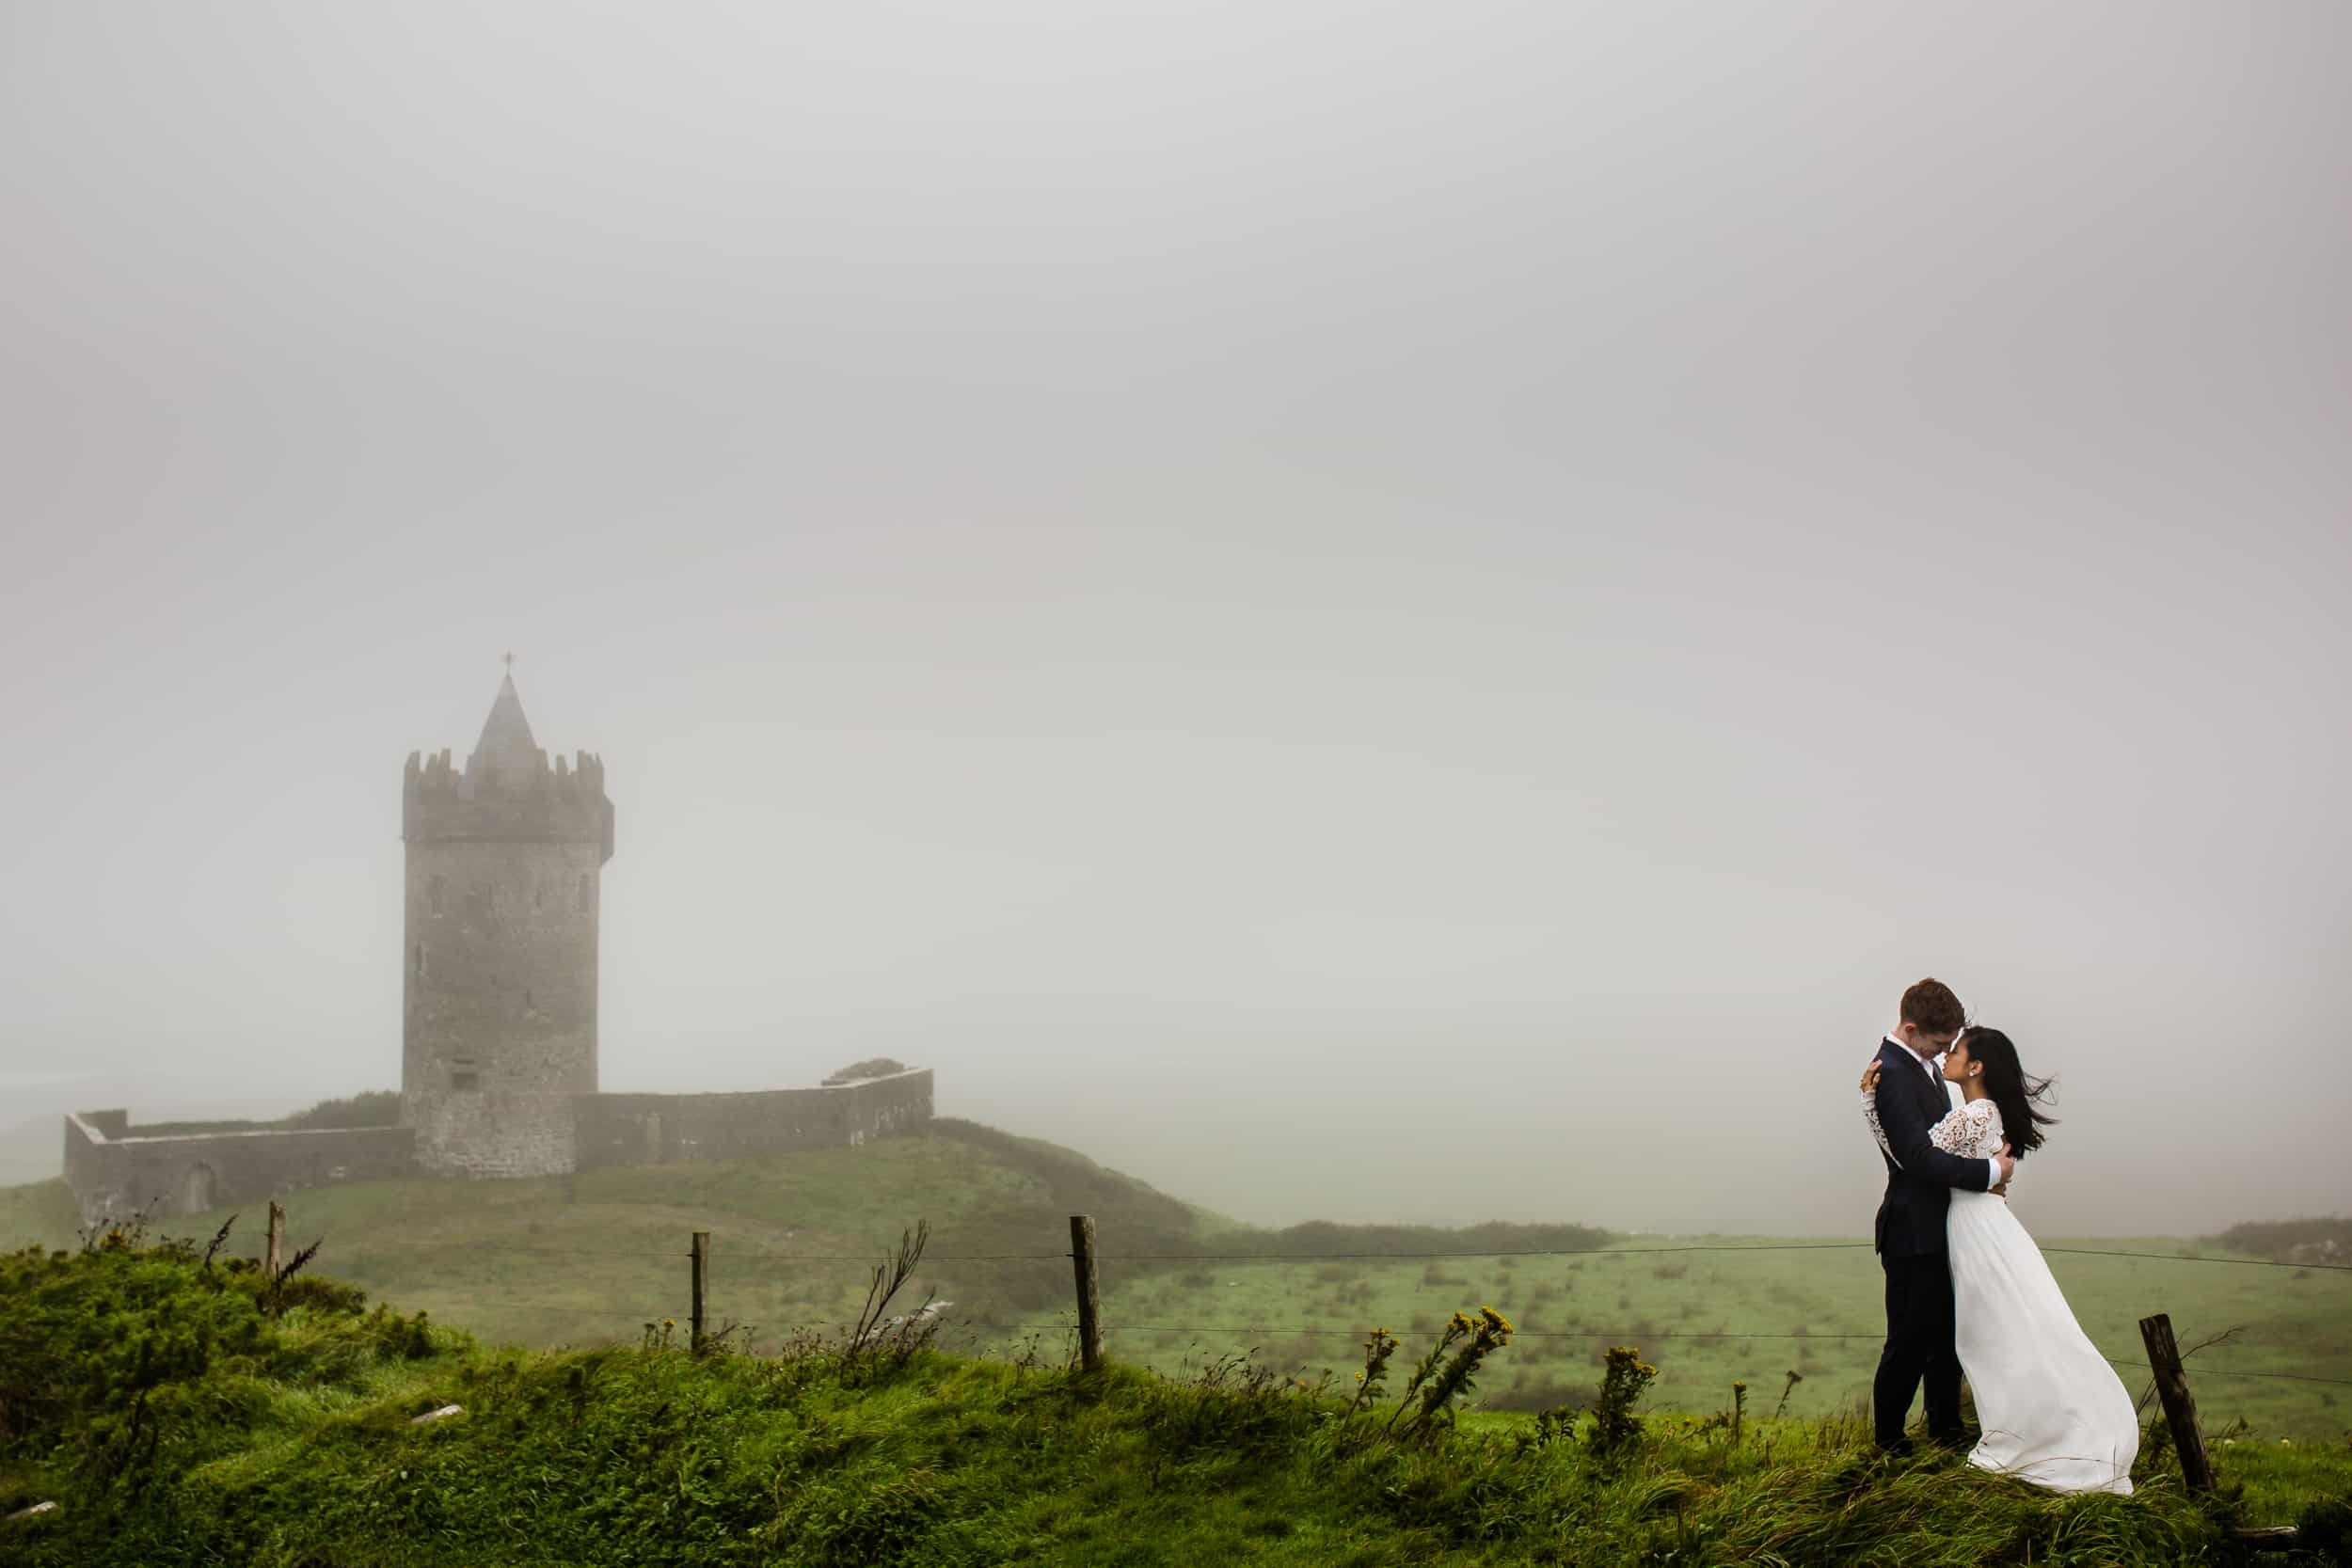 Destination Wedding in Ireland-Castles in the mist